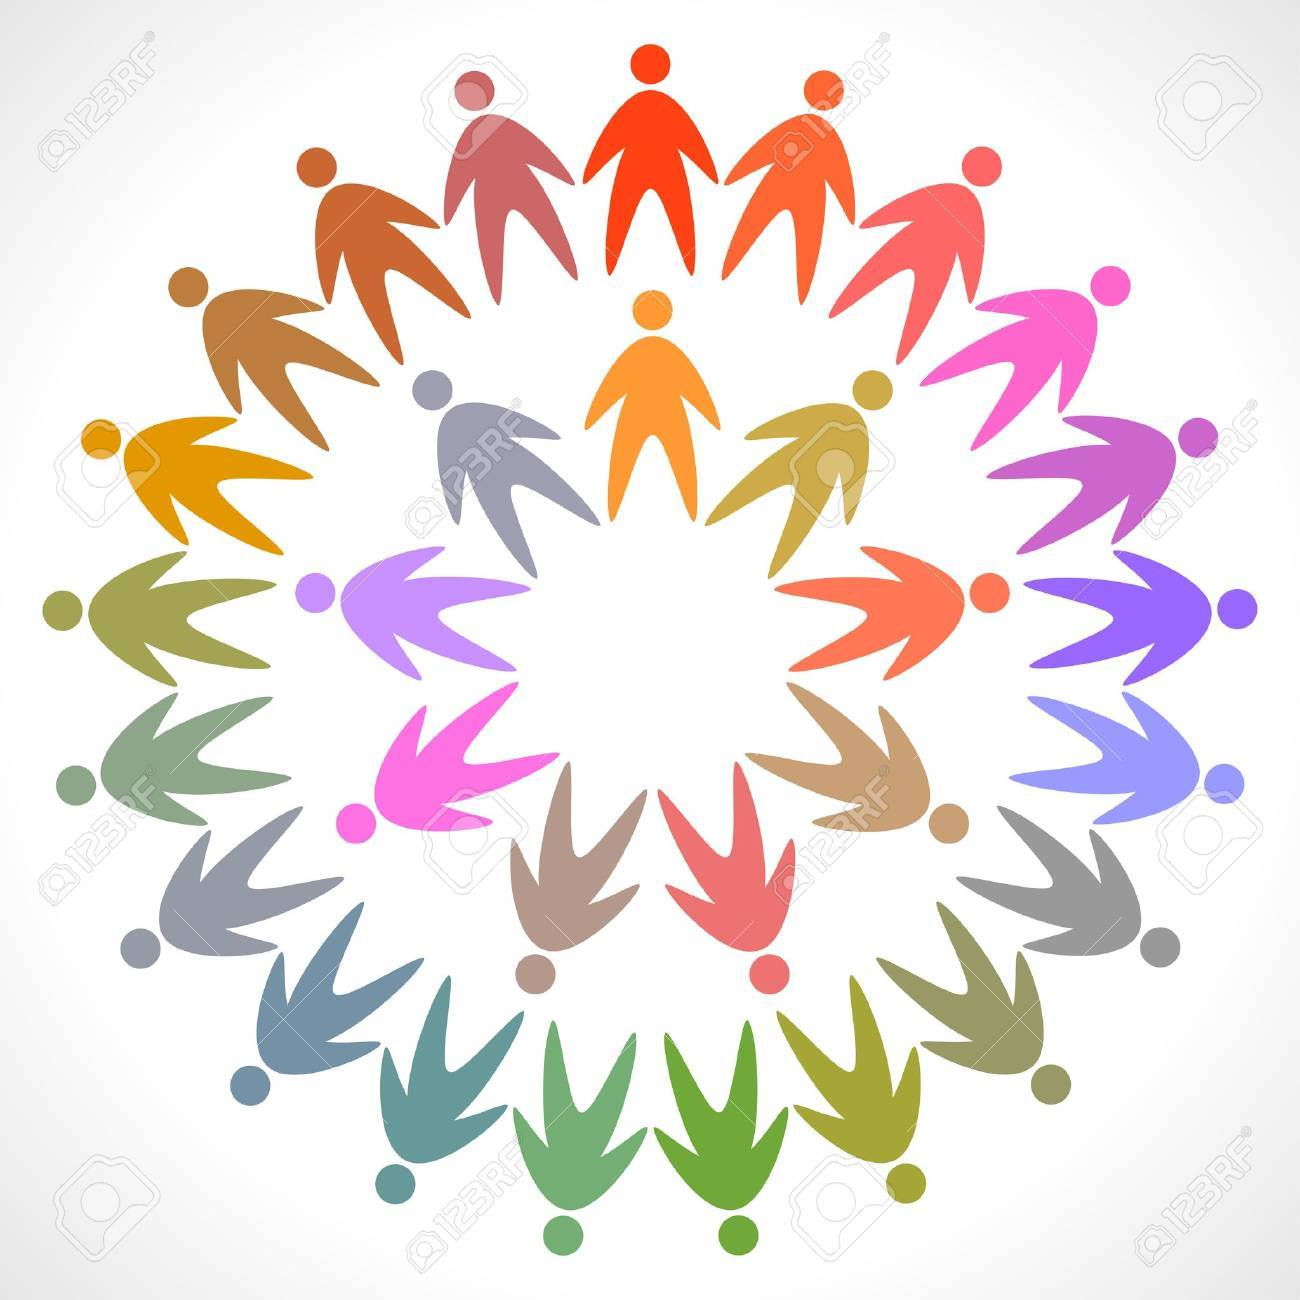 circle of colorful people pictogram Stock Vector - 13917895